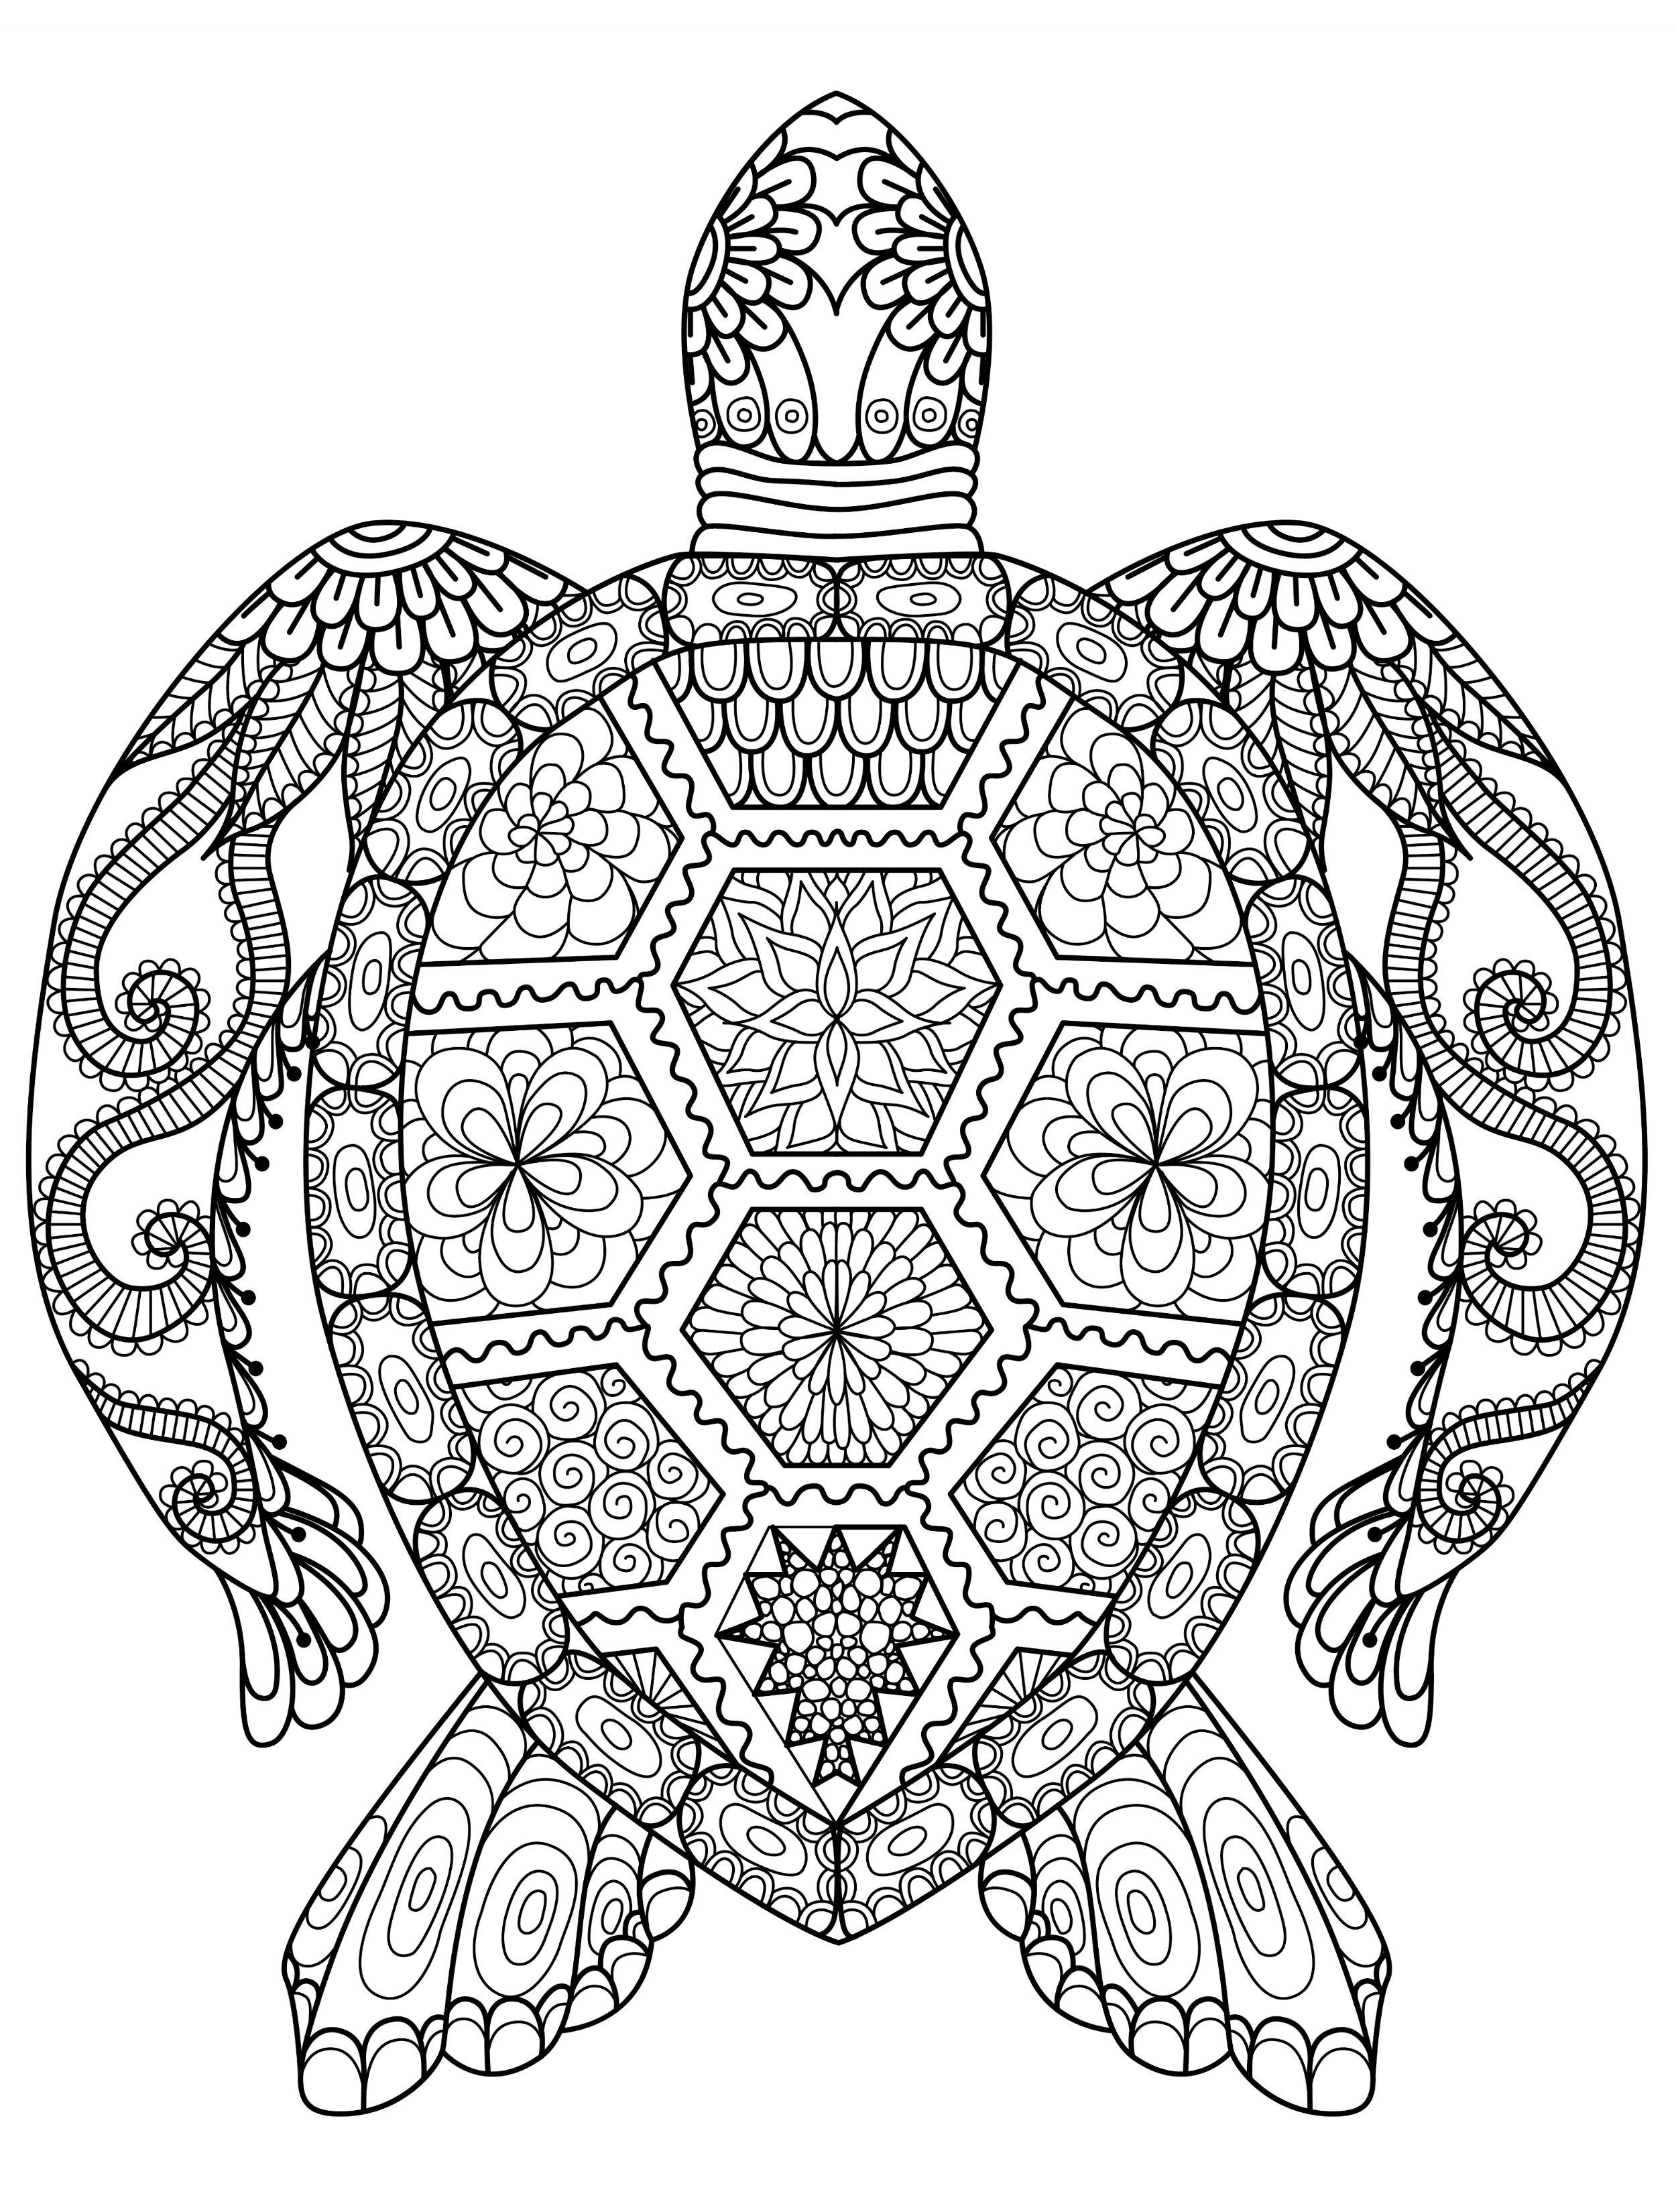 sea turtle coloring page for adults for free download … | jan | Pinte…